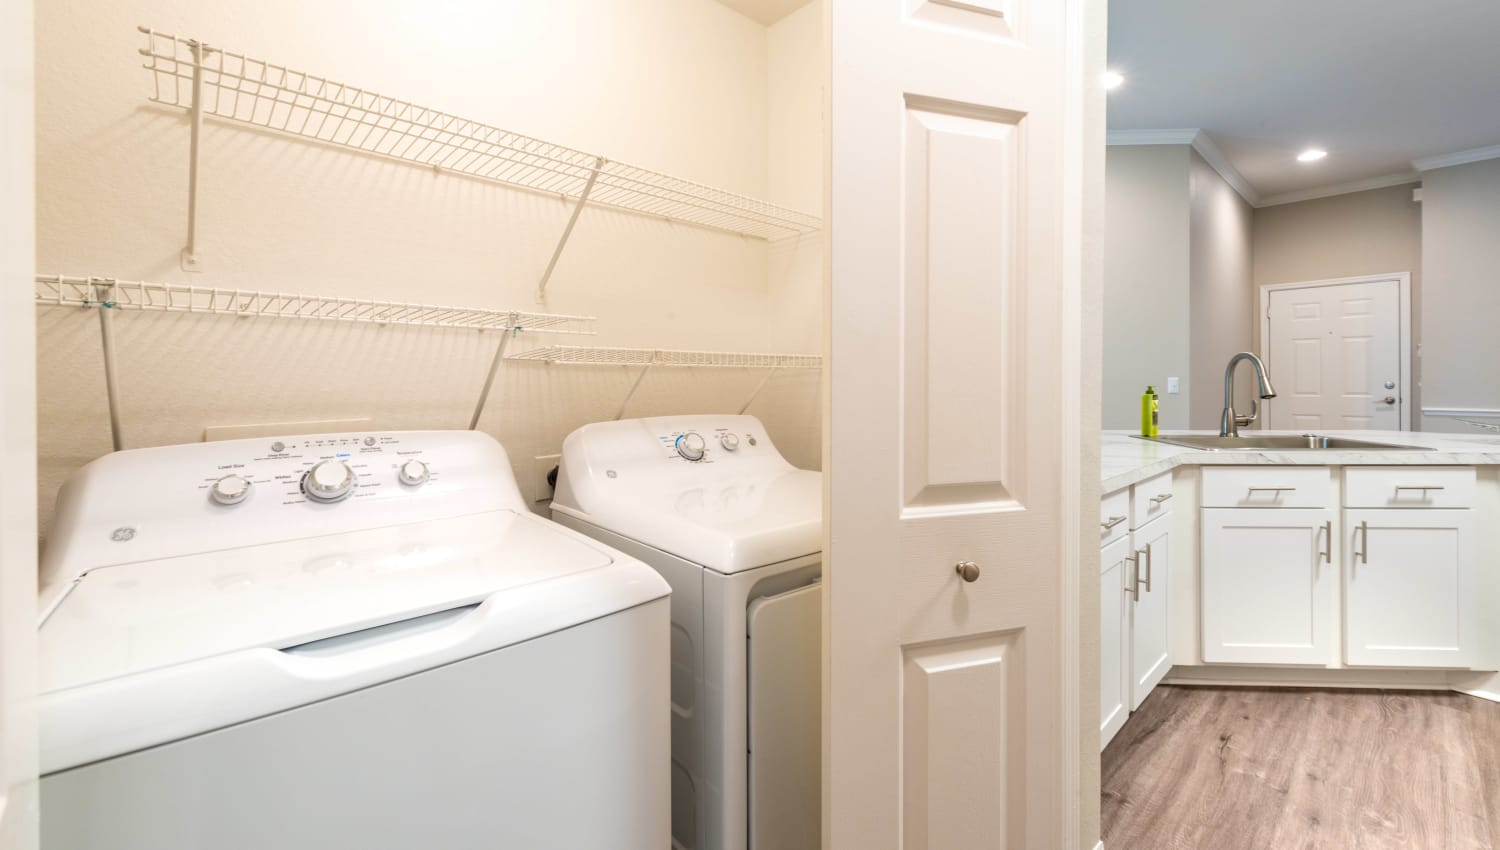 In-unit full-size washer and dryer in a model home at Cape House in Jacksonville, Florida